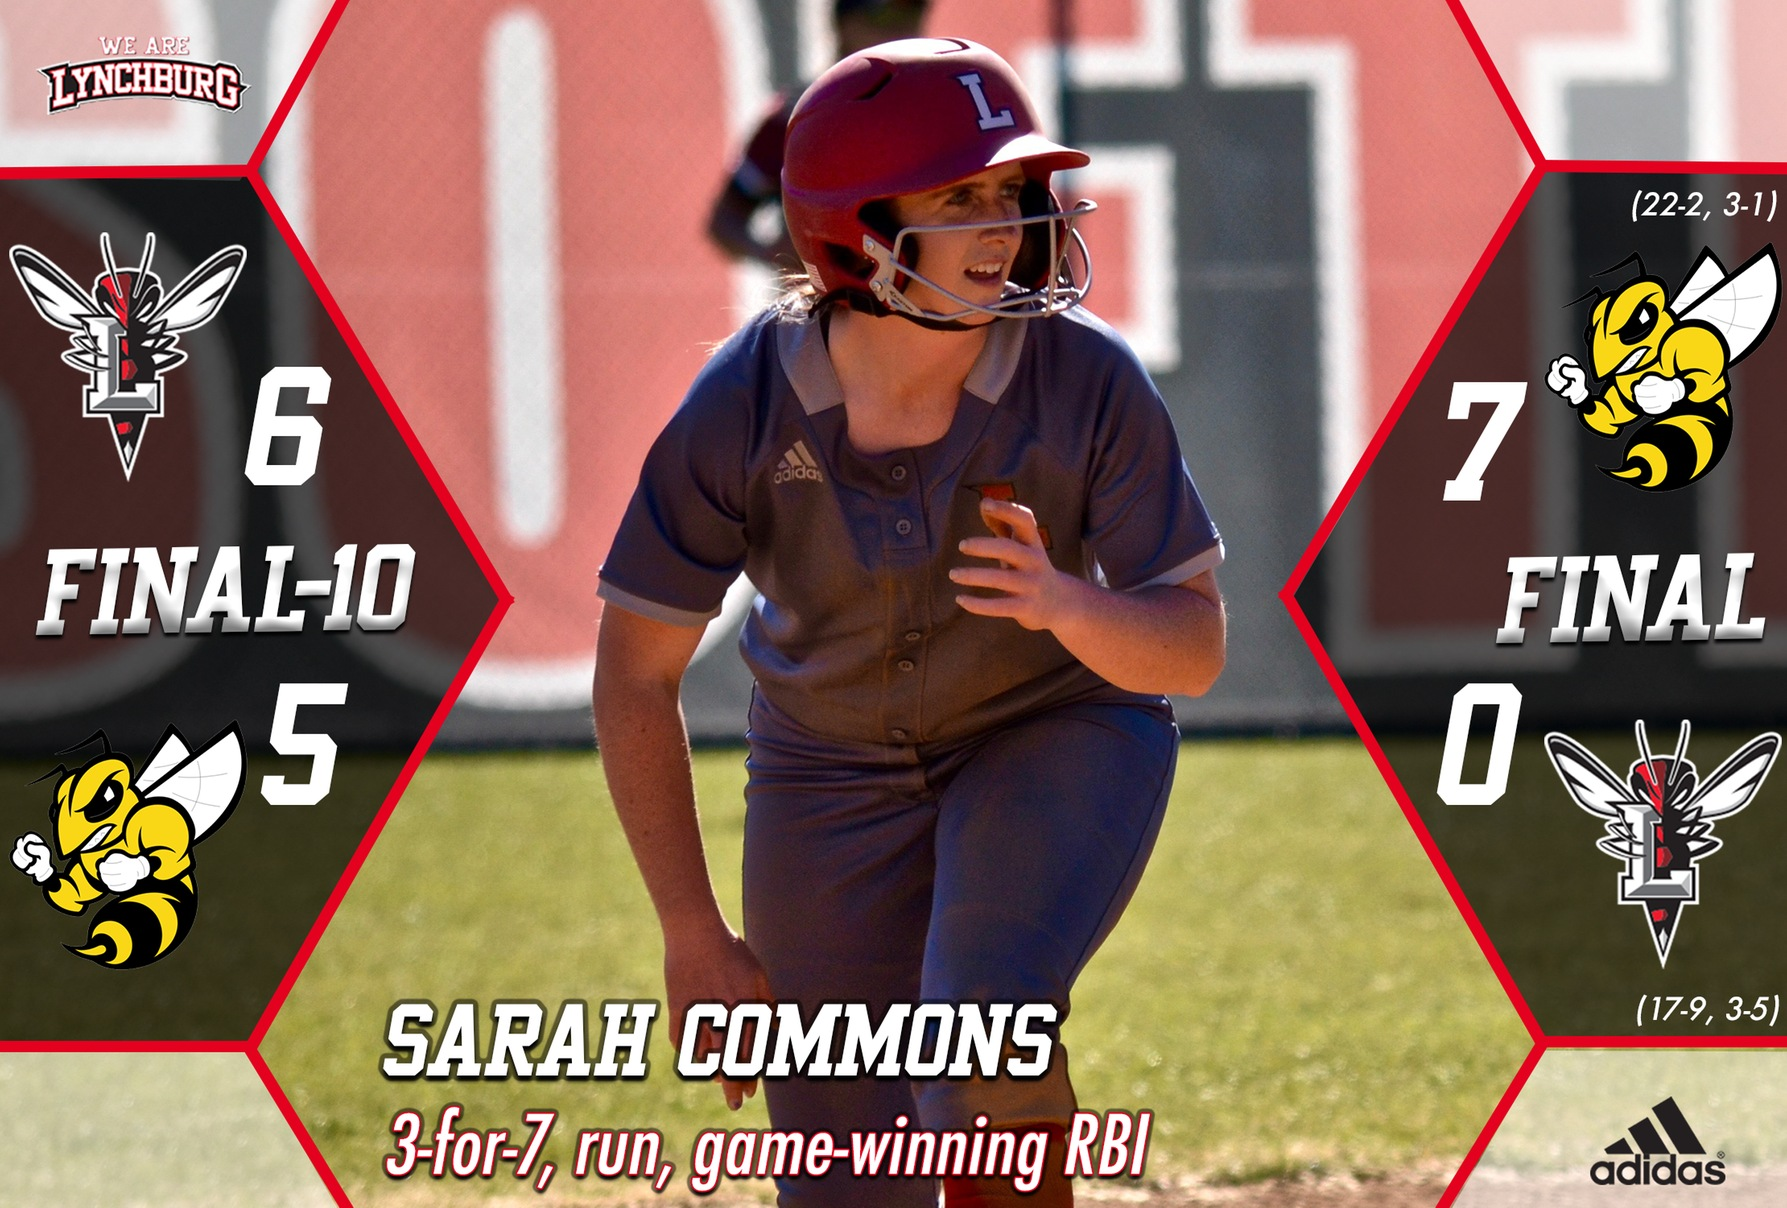 Sarah Commons runs the bases. Text: Sarah Commons 3-for-7, run, game-winning RBI